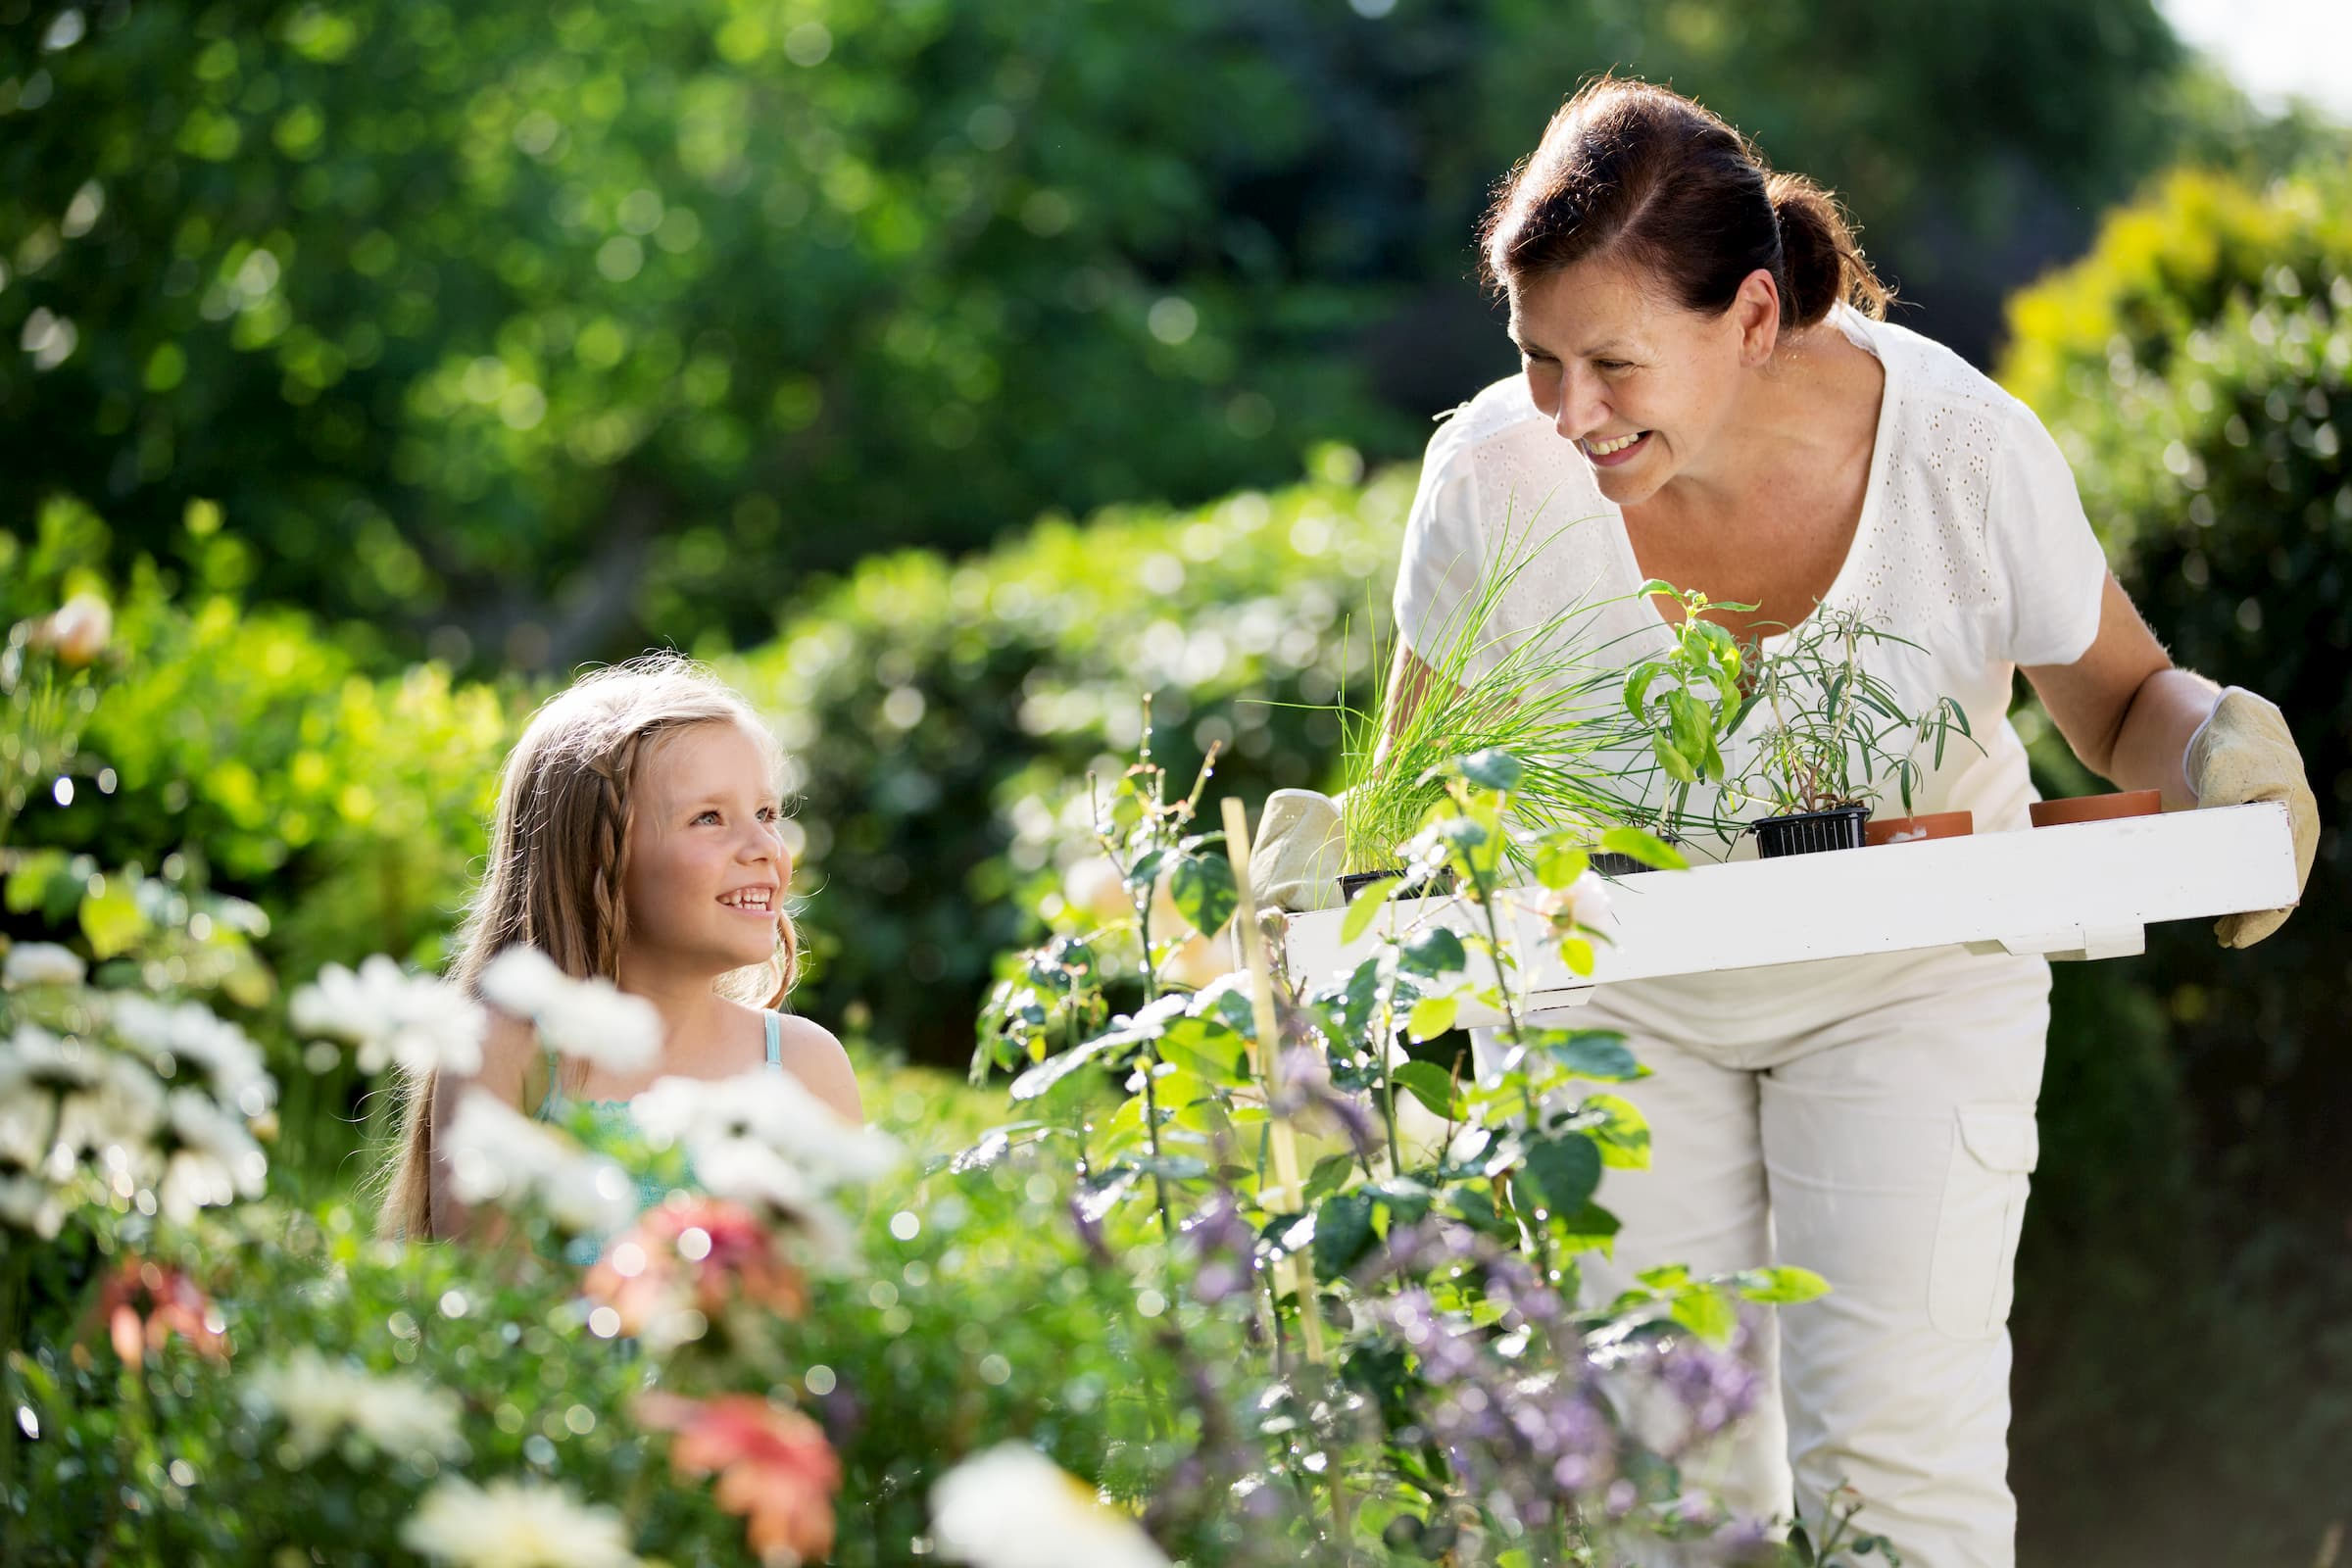 middle aged white woman gardening with granddaughter as an example of patient stories at nmc health